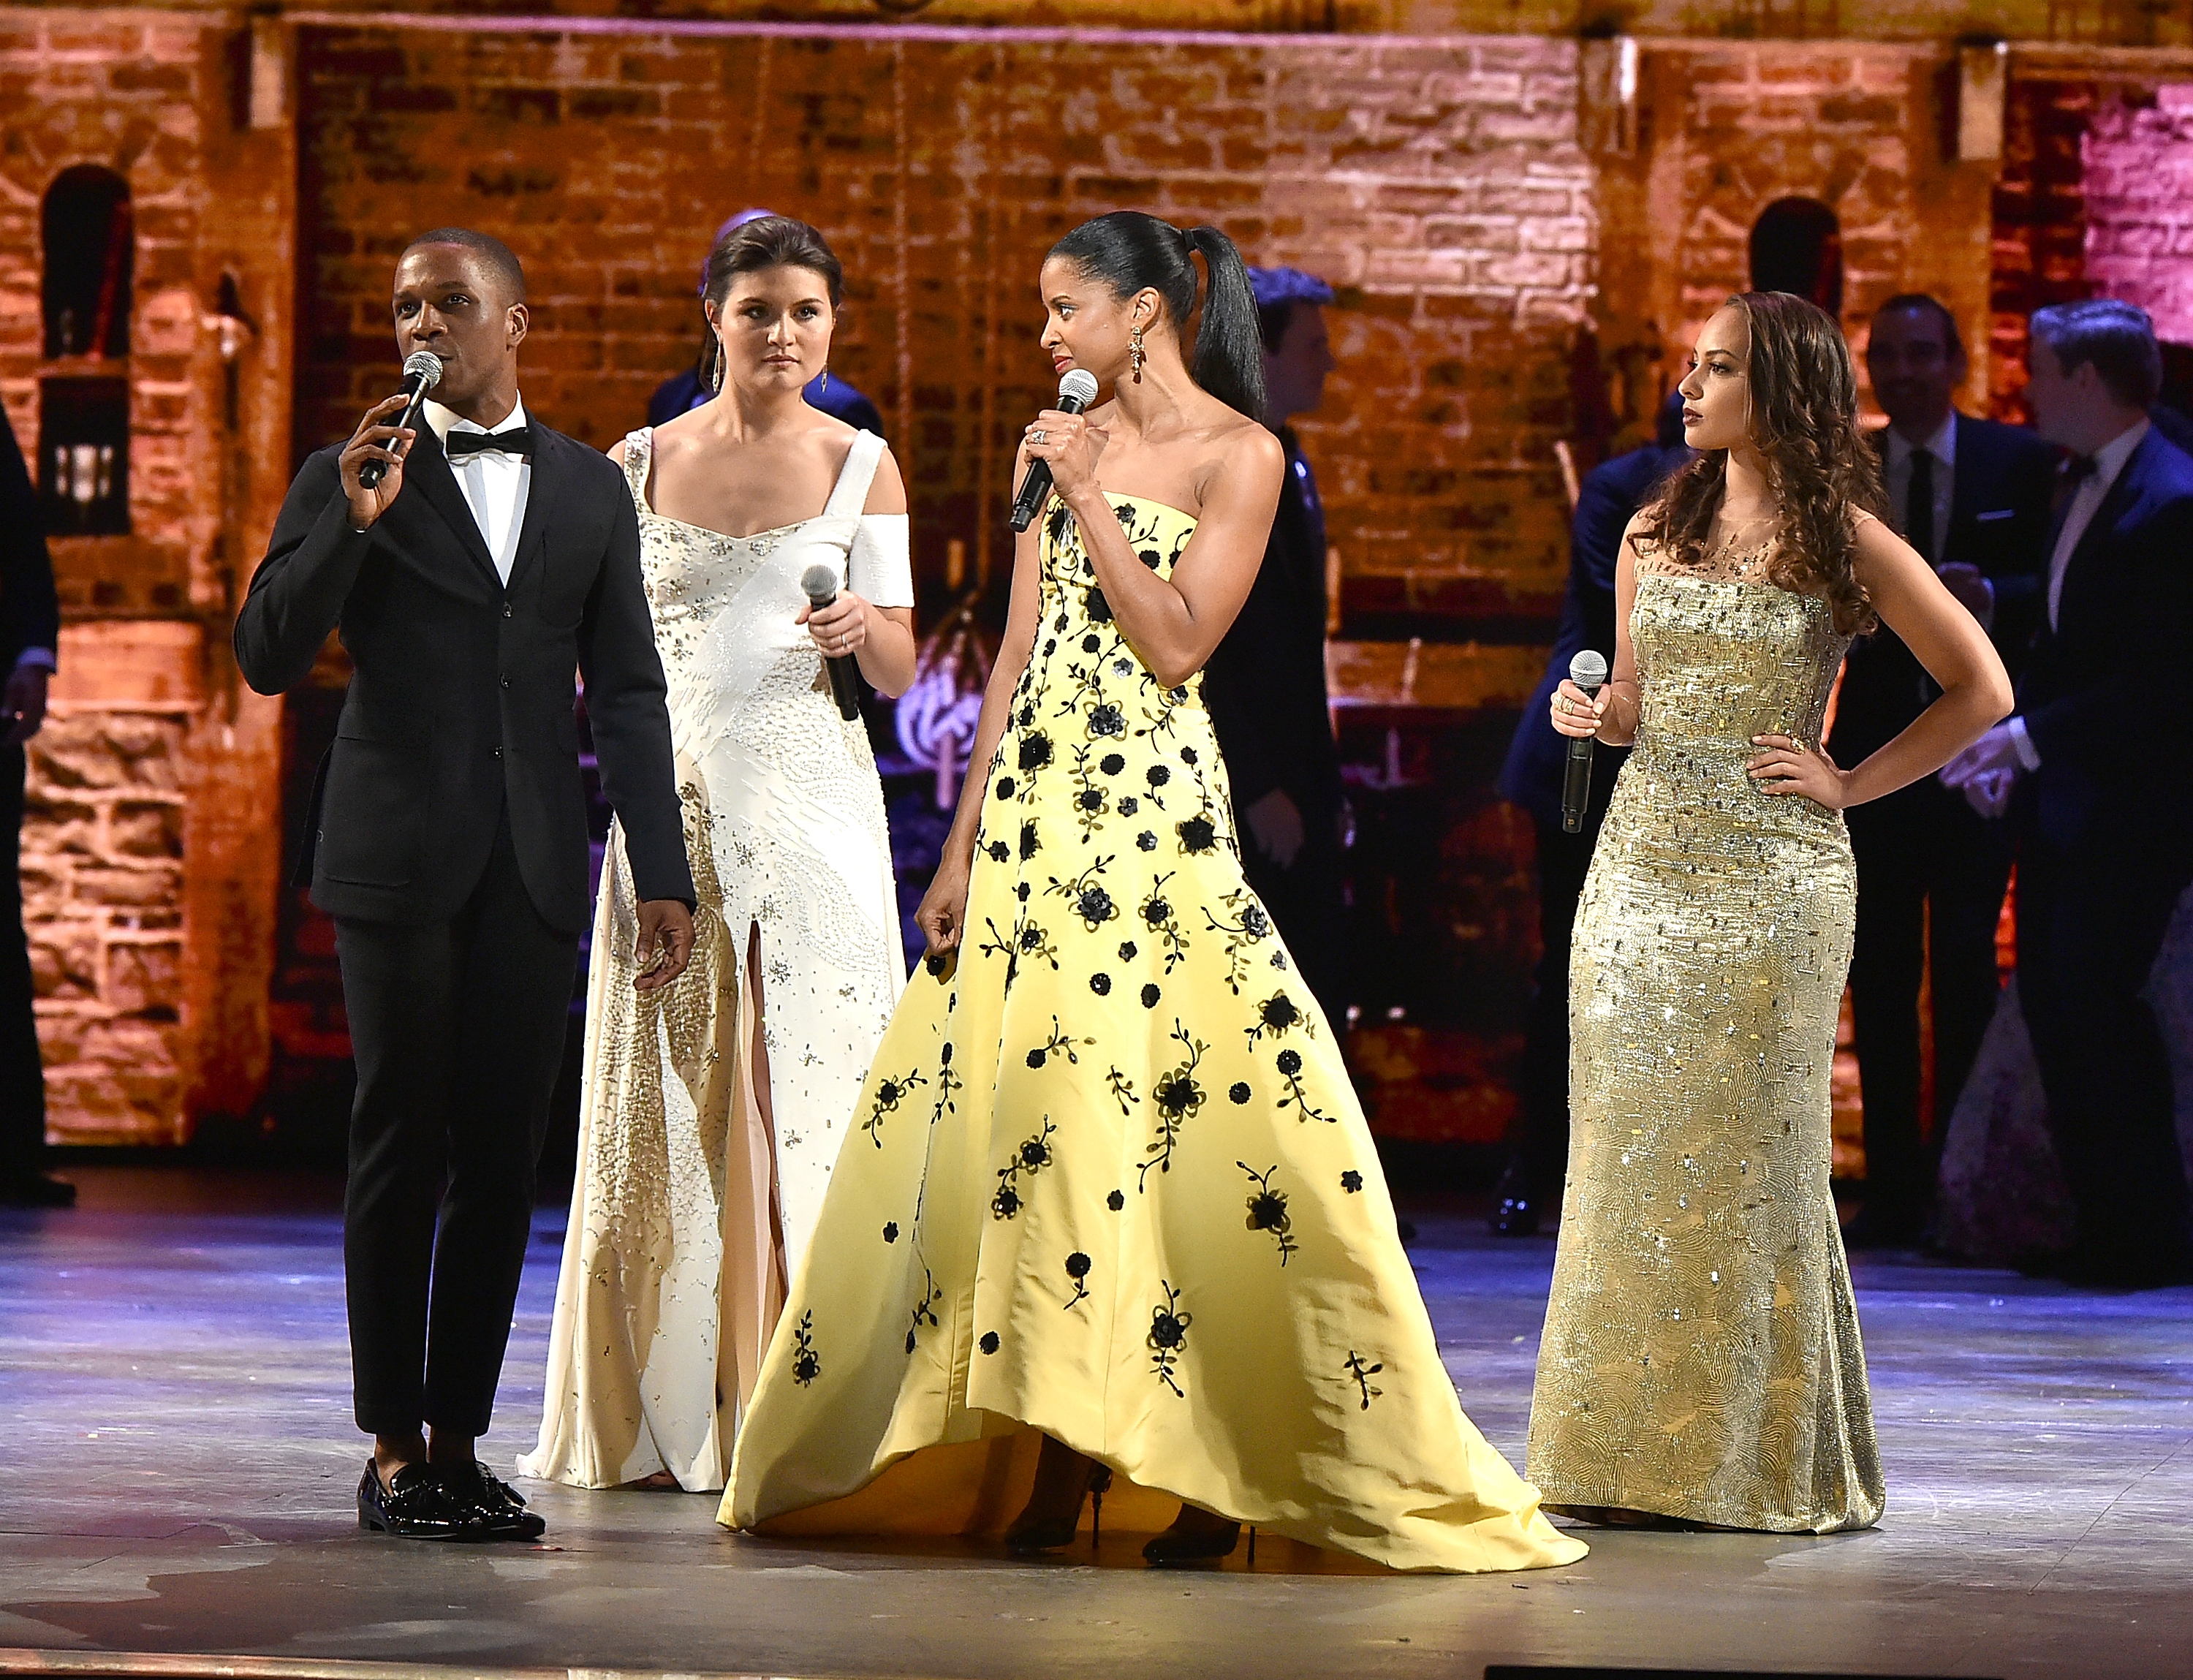 Leslie Odom Jr., Phillipa Soo, Renee Elise Goldsberry, and Jasmine Cephas Jones perform onstage during the 70th Annual Tony Awards at The Beacon Theatre on June 12, 2016 in New York City.